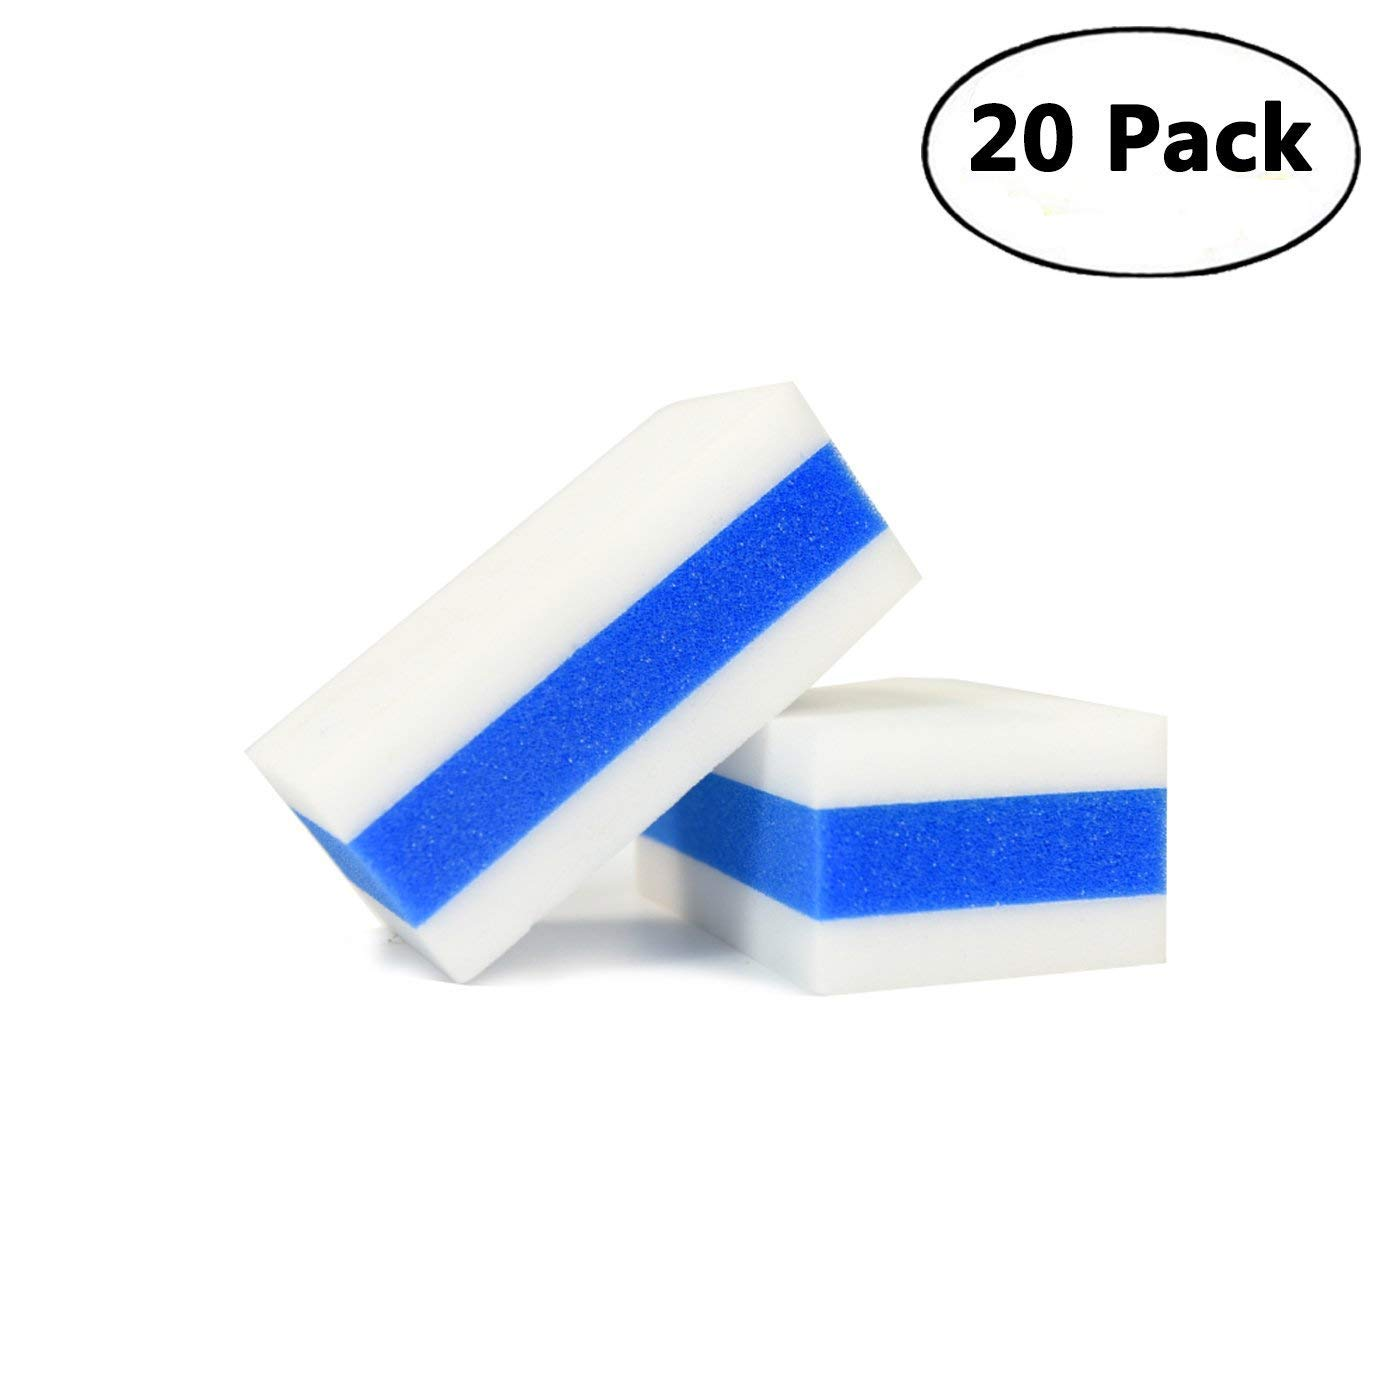 CARCAREZ Car Magic Eraser Auto Cleaning Applicator Pad Have Three Layers, Pack of 20